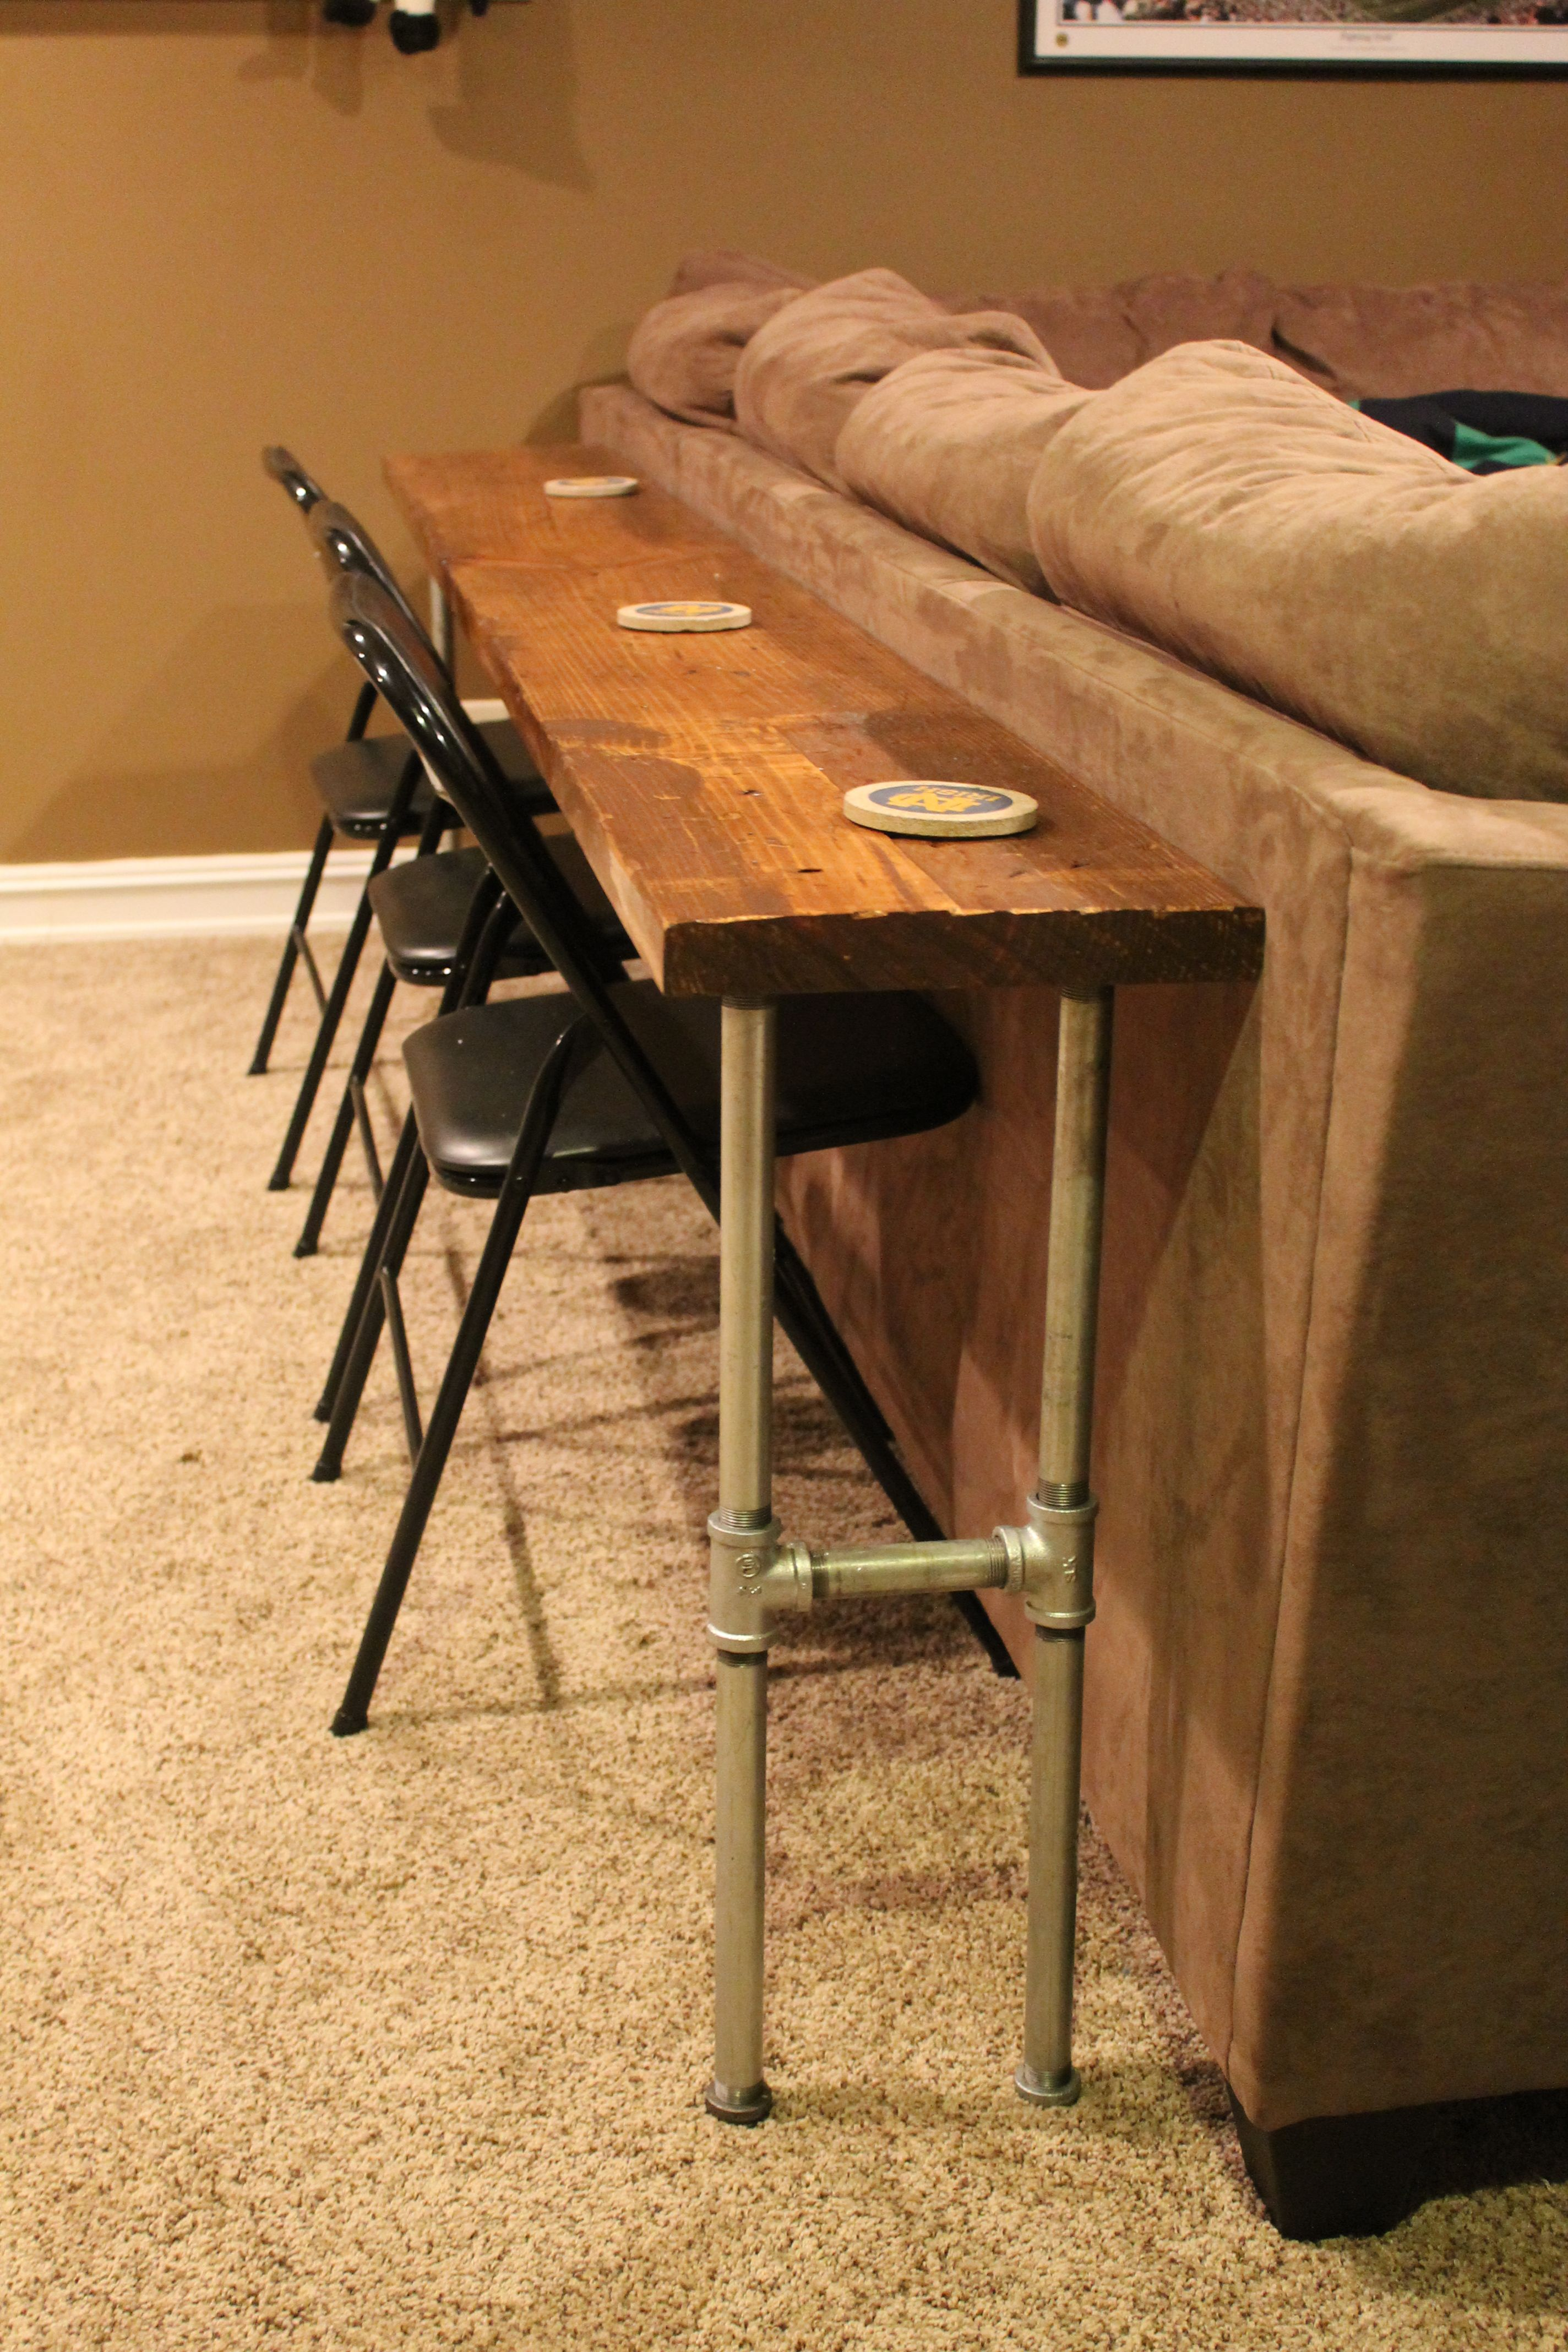 Bar Wohnzimmer Möbel Sofa Table Bar Table Made From 2x8x12 Board And Conduit Great For